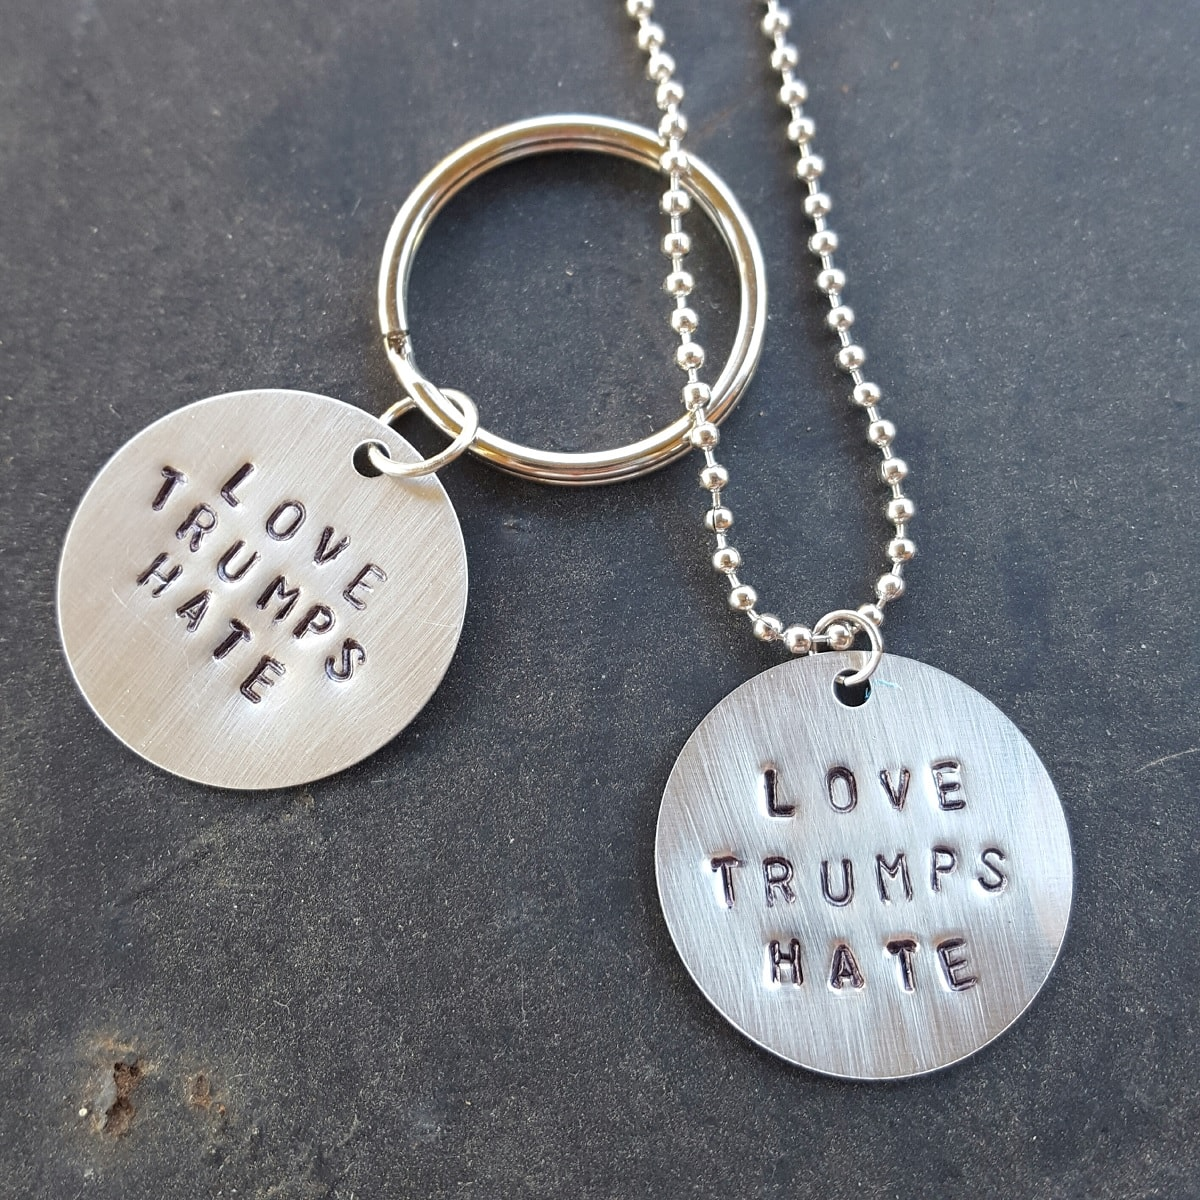 love-trumps-hate-necklace-keychain-silver-jewelry.jpg